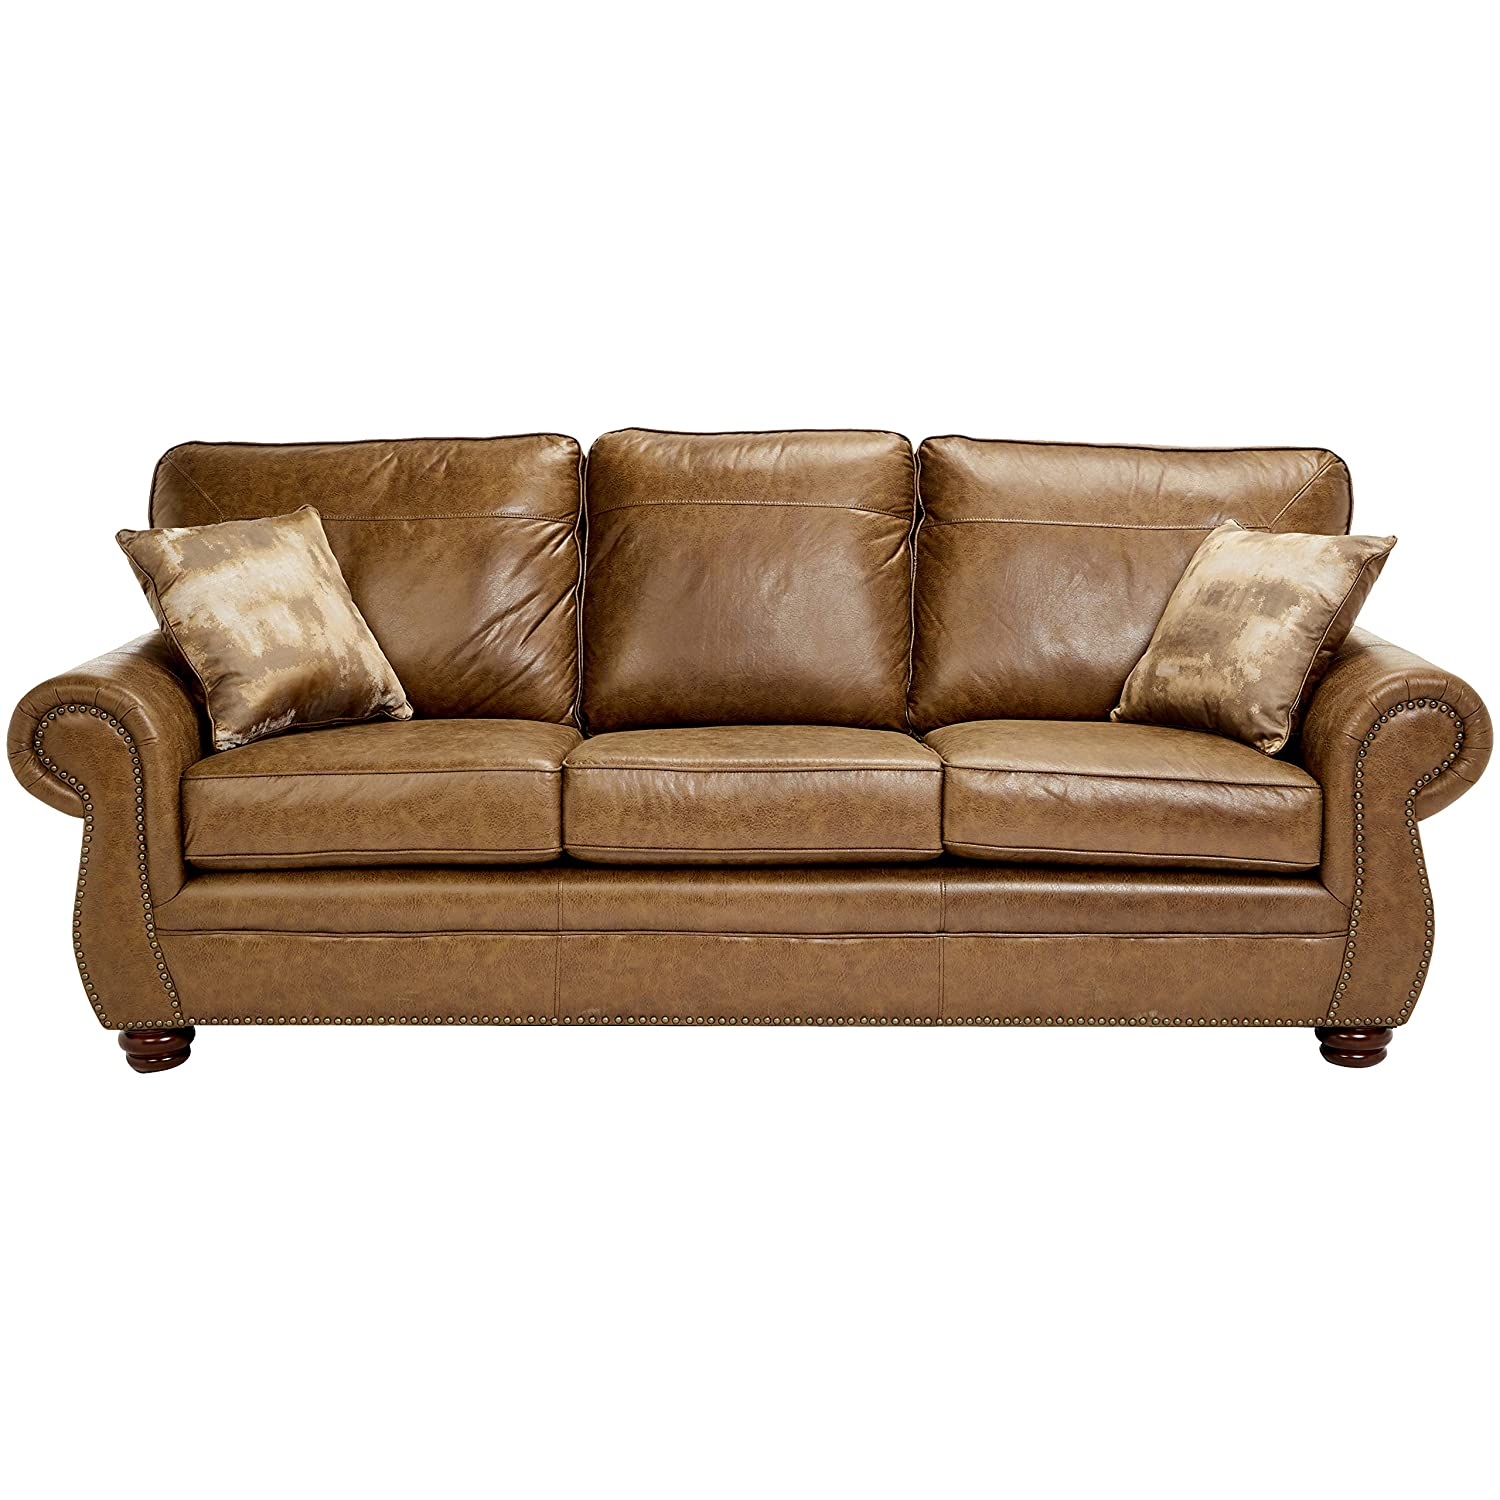 Magnificent Sunrise Coast Amadora Faux Leather Sofa Burnt Caramel Short Links Chair Design For Home Short Linksinfo